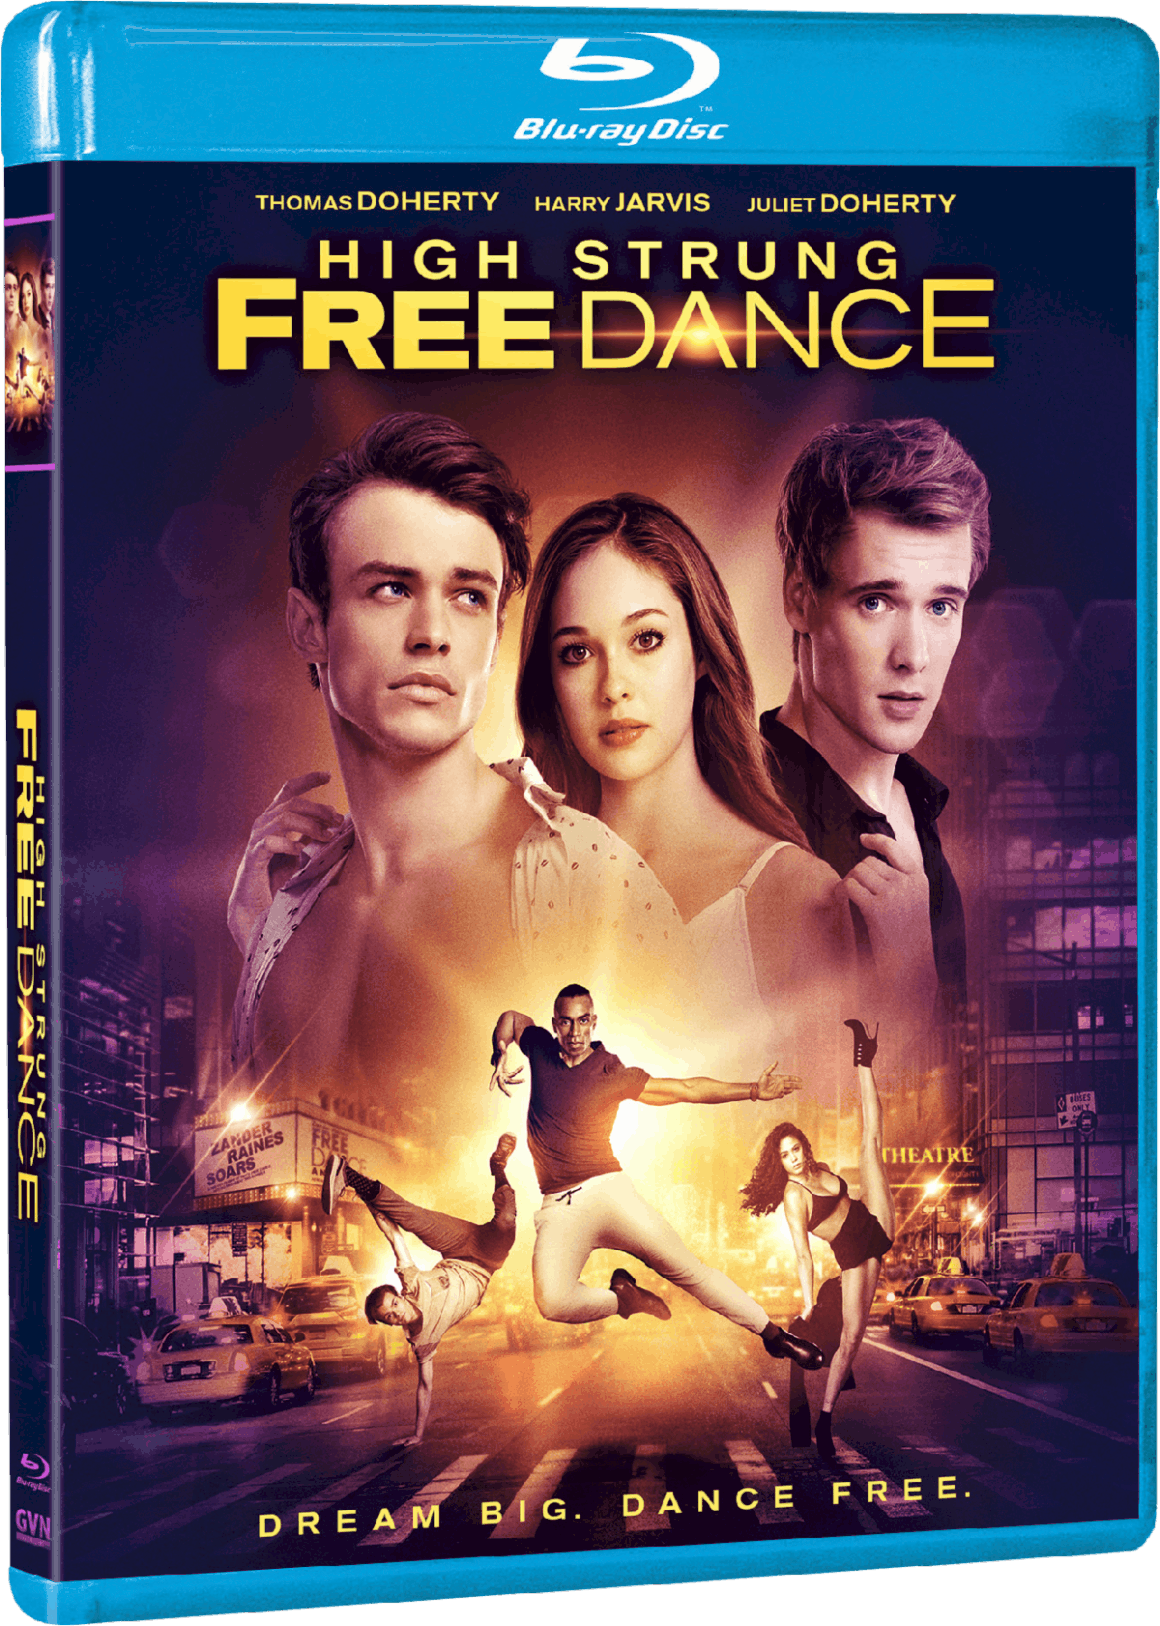 High Strung Free Dance blu-ray box art weathering with you